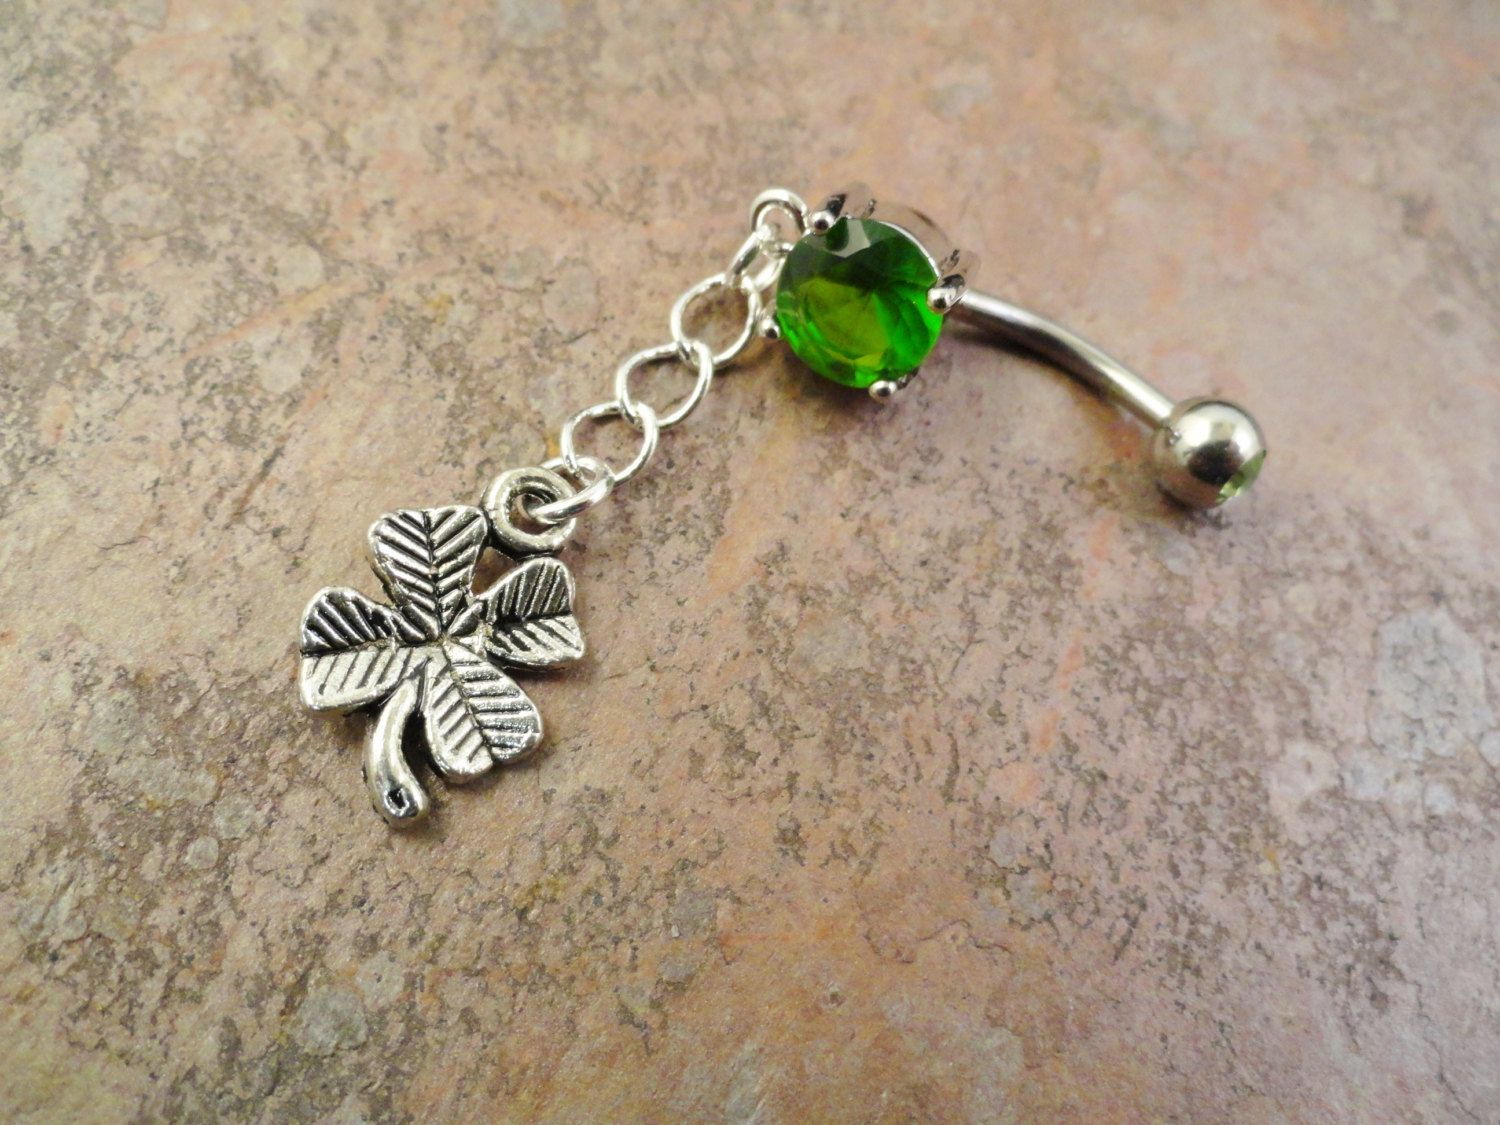 Belly button piercing names  Four Leaf Clover Belly Button Ring  via Etsy  Dream Closet